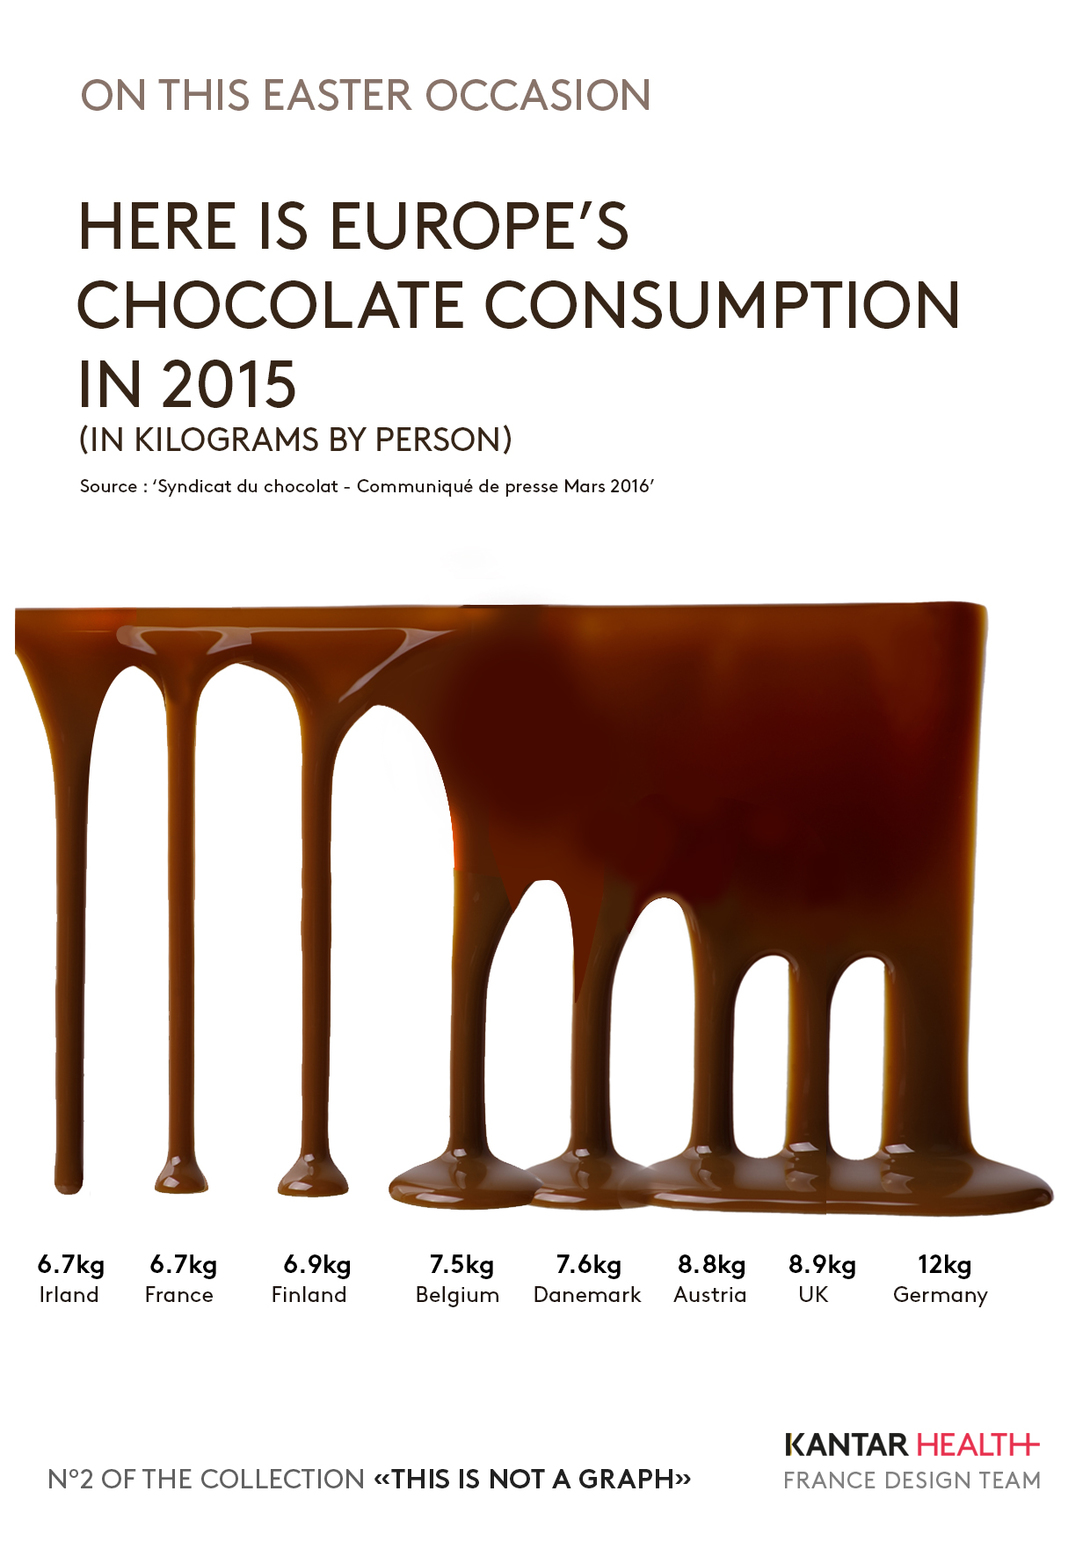 Europe's chocolate consumption in 2015